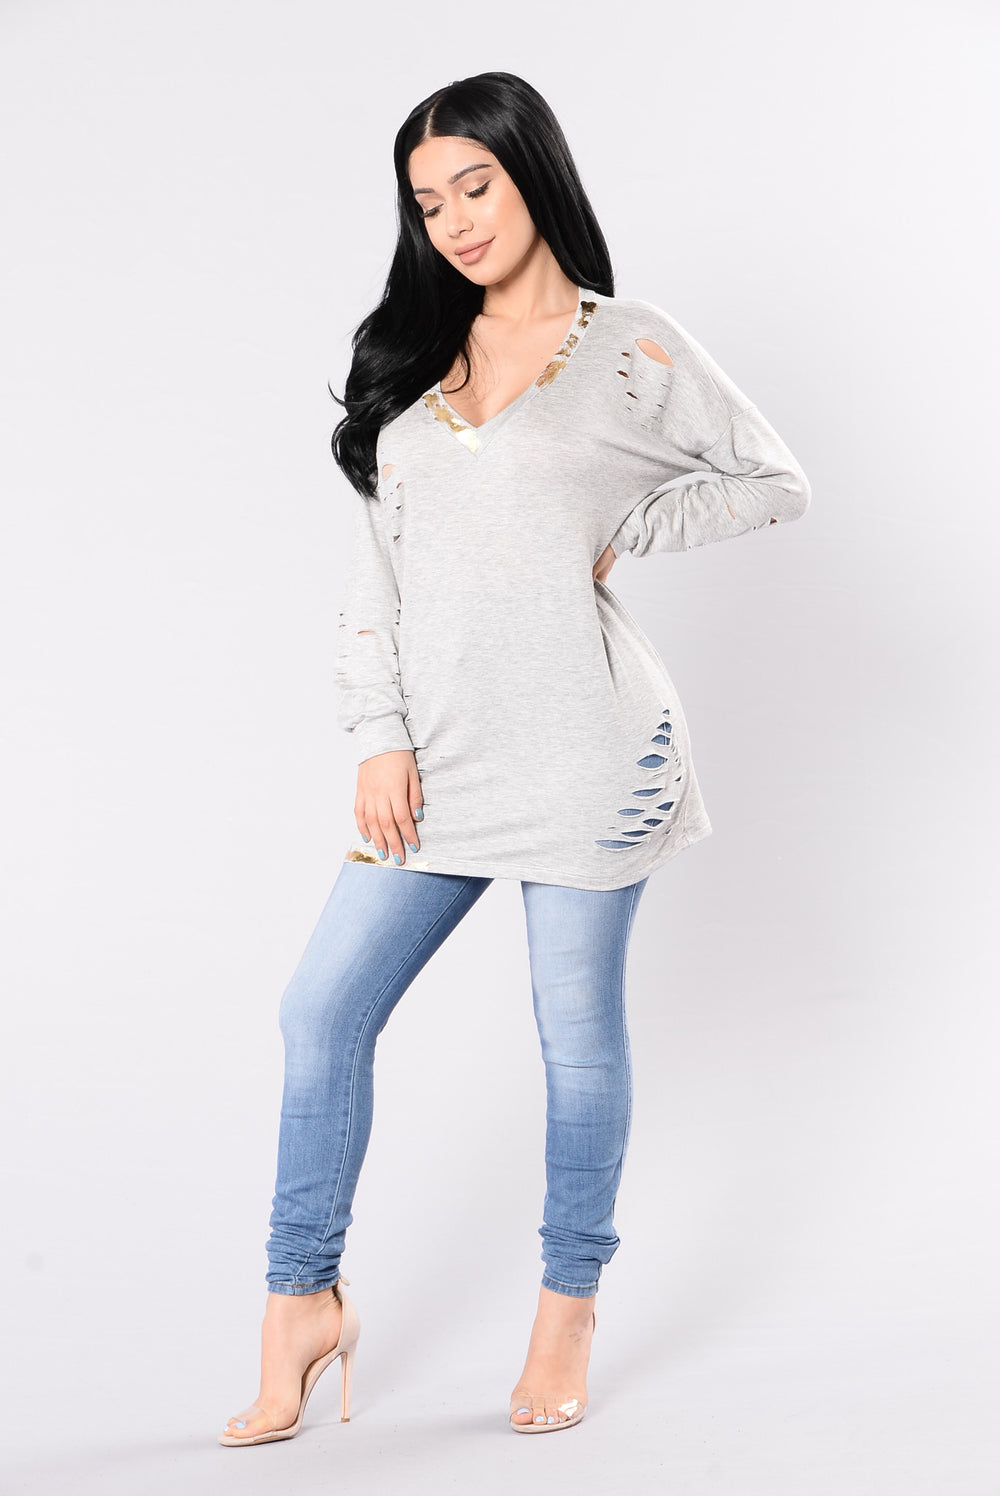 Glisten Up Sweater - Grey